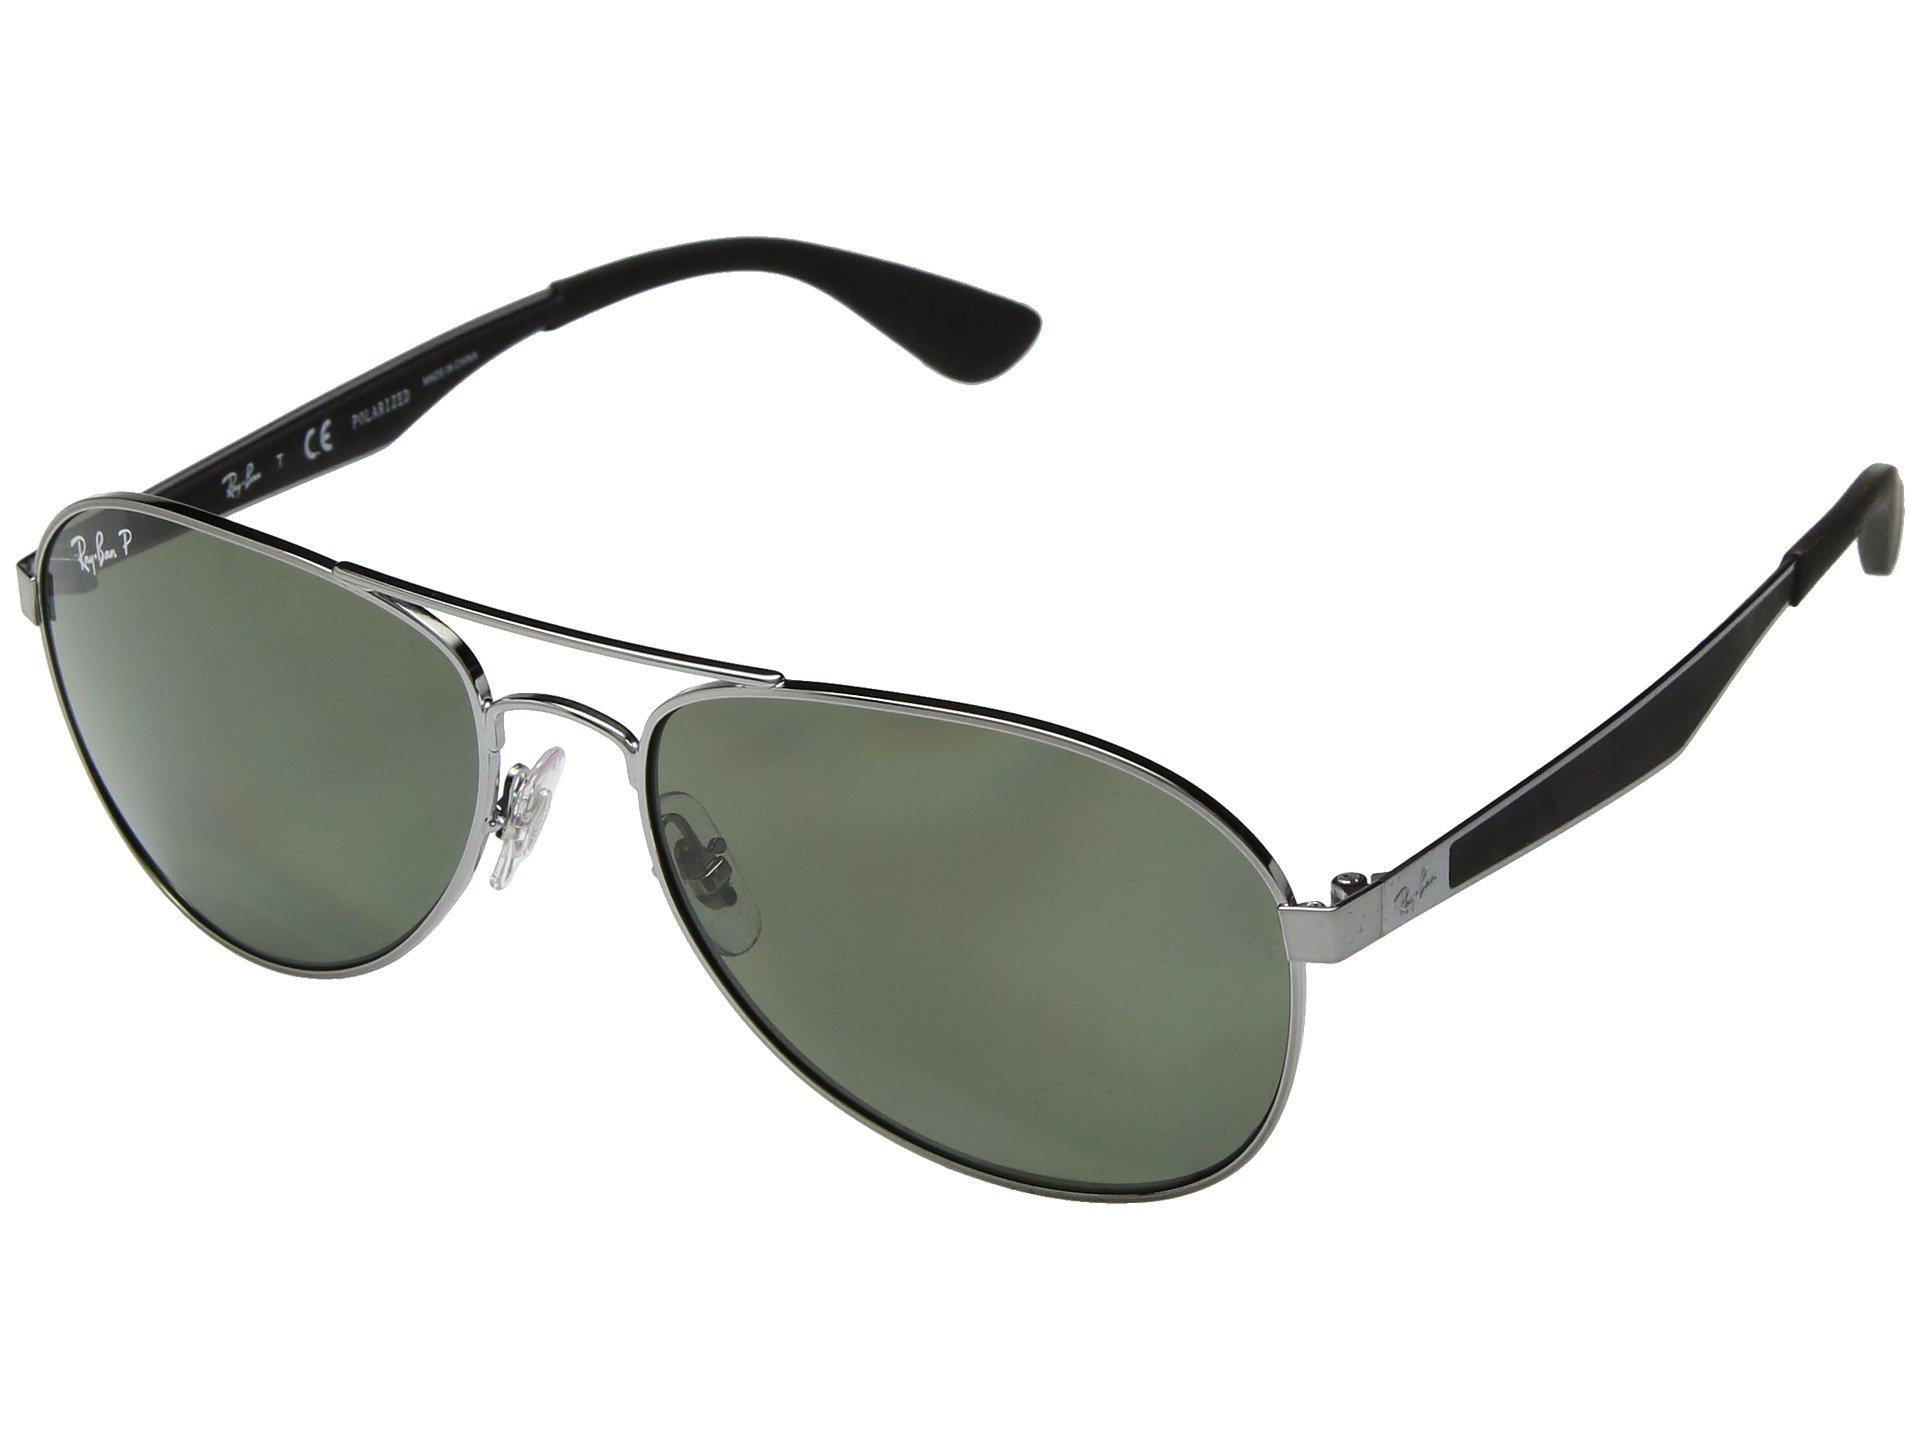 86999066f7 Ray-Ban. Men s 0rb3549 58mm (gunmetal polarized Green Classic G-15) Fashion  Sunglasses